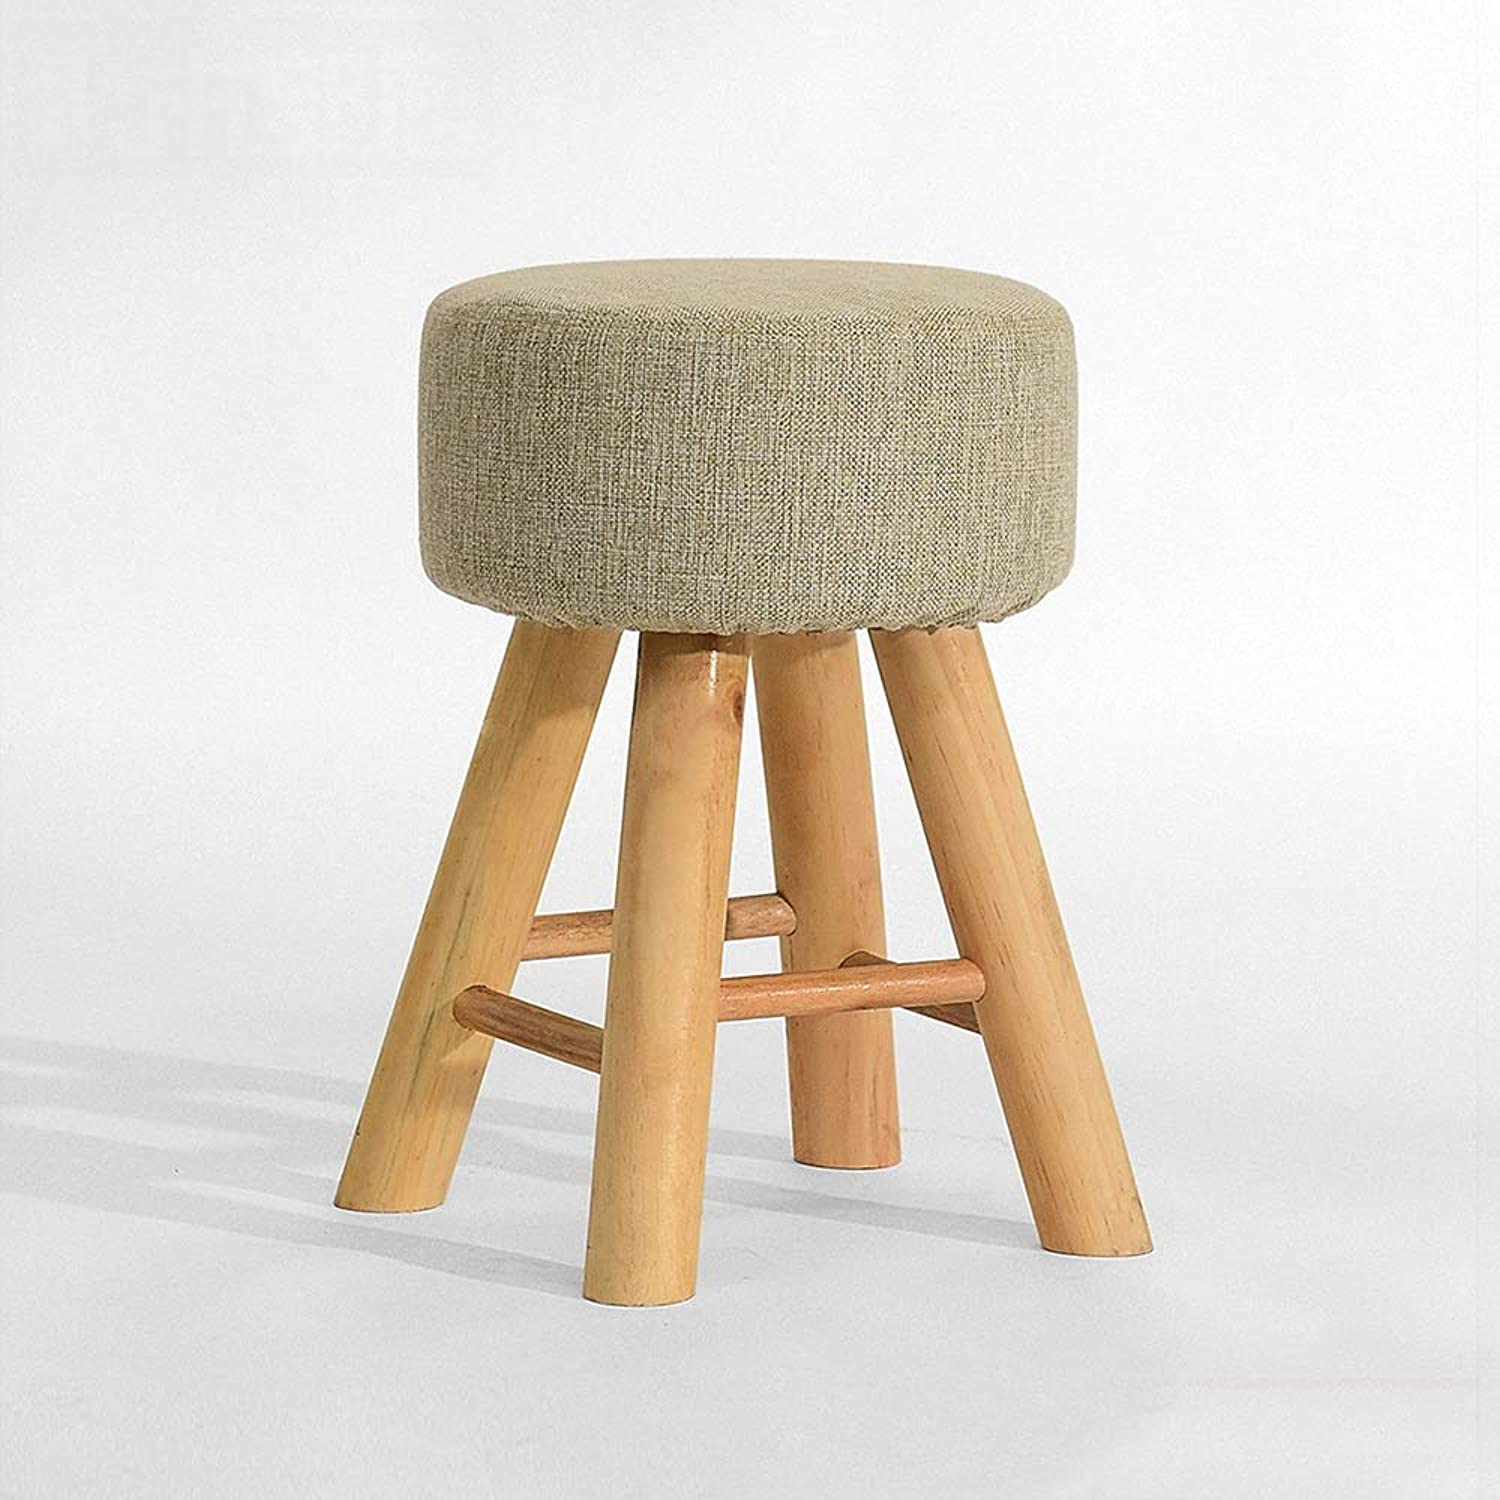 DUXX Bar Stool, Stool Solid Wood Dining Stool Square Stool Fabric Dressing Stool Fashion Makeup Stool Bench Home Stool (color   A)